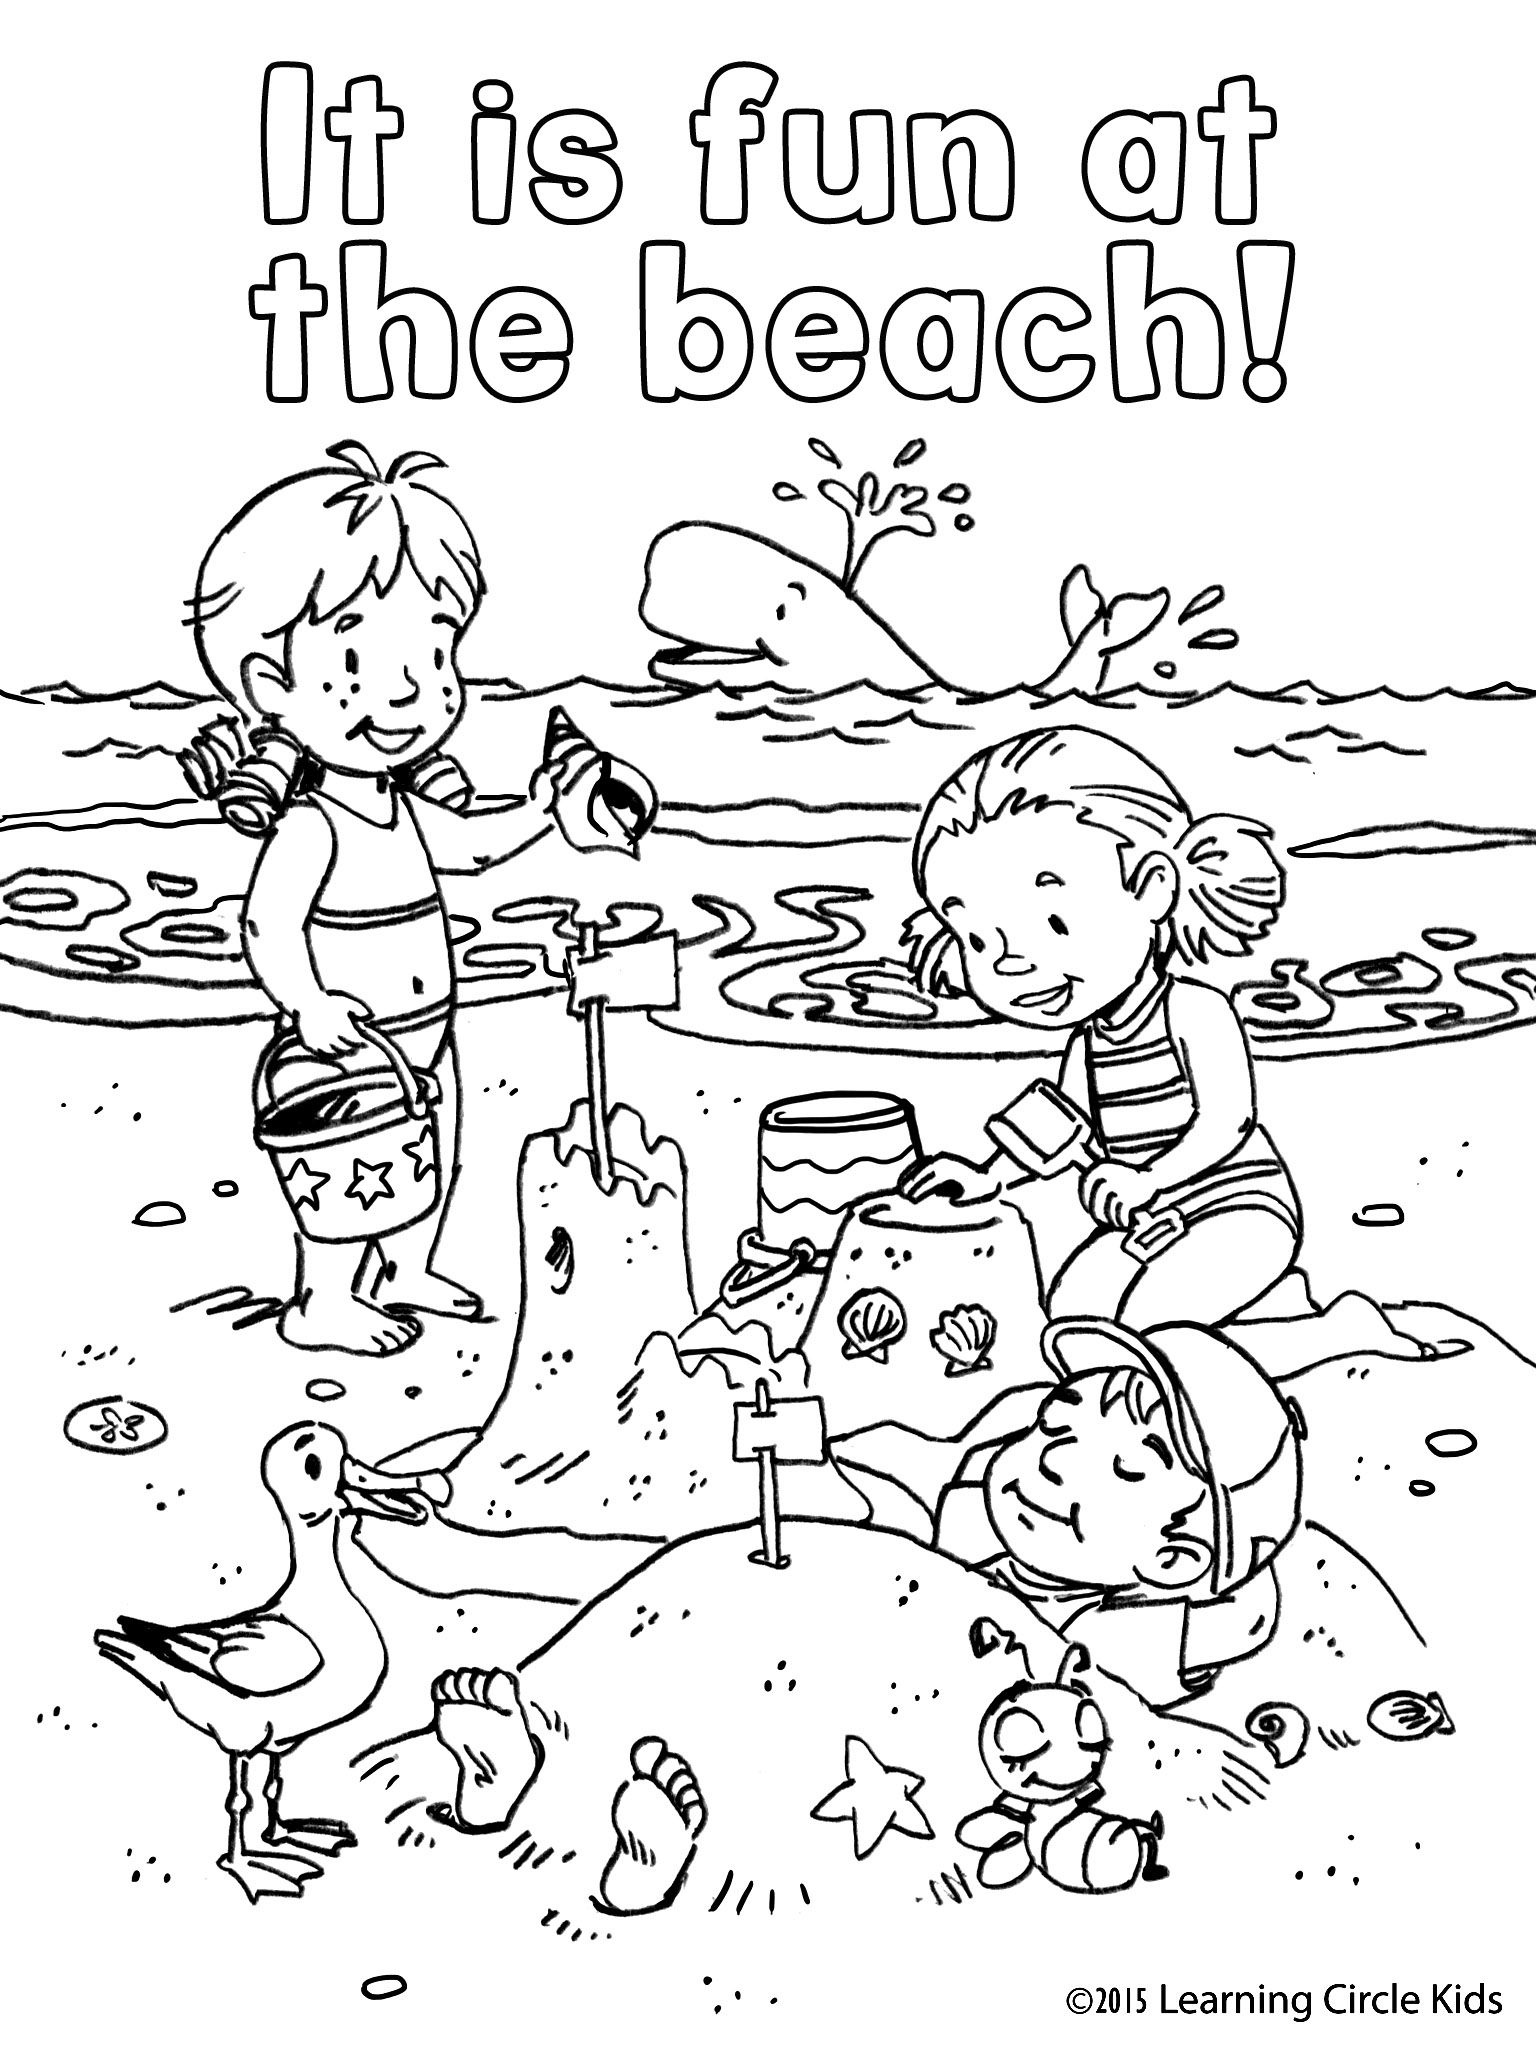 Free Coloring Page Children S Summer Fun At The Beach With Reader